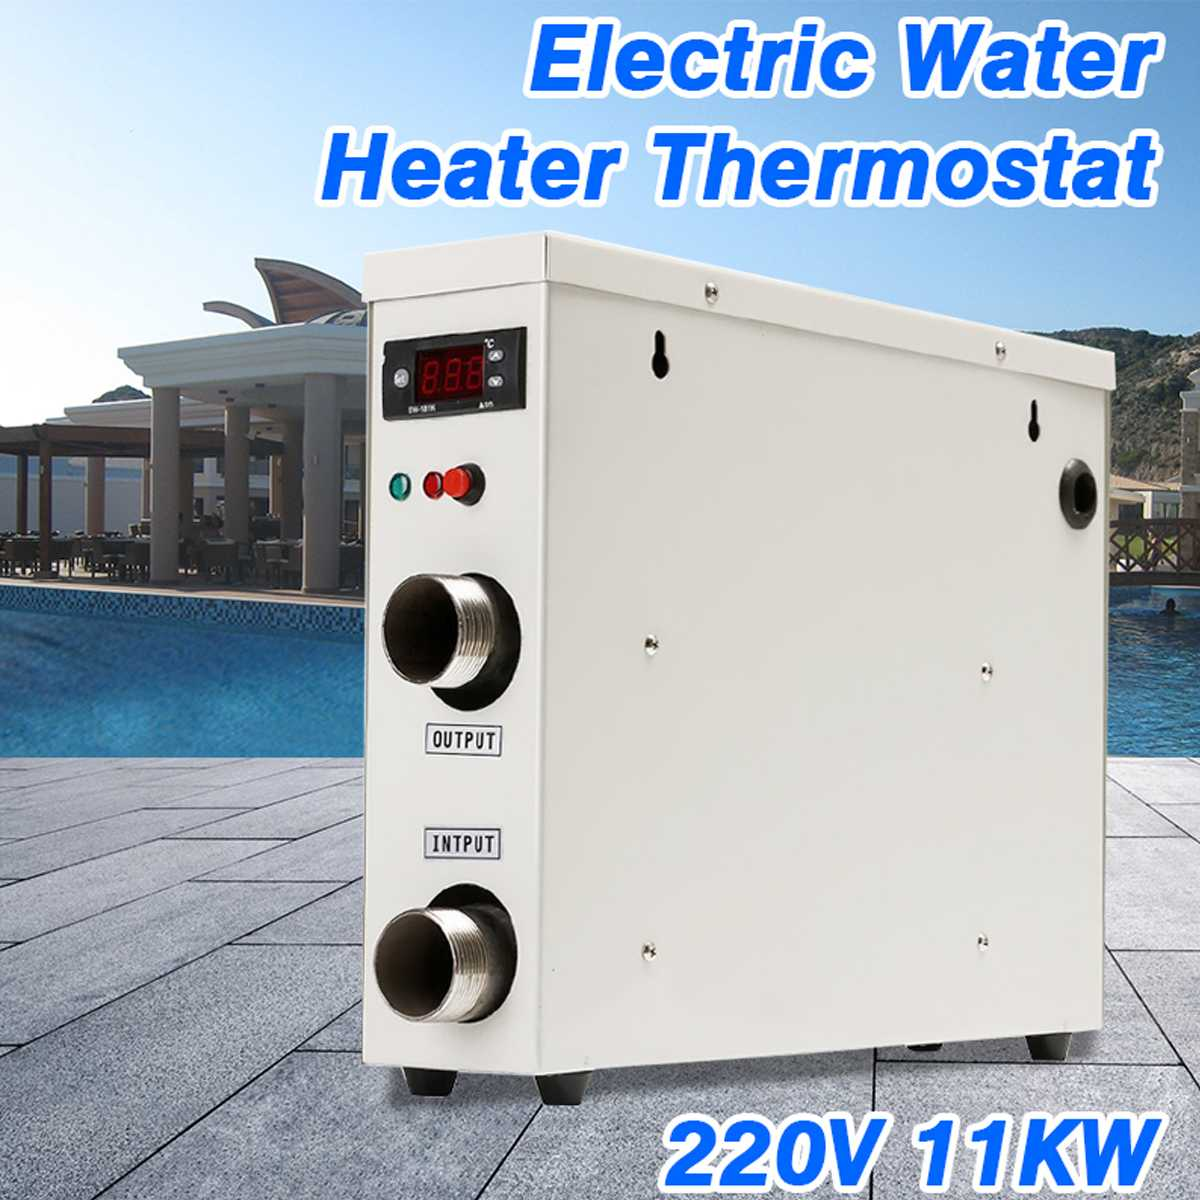 11KW 220V AC Electric Digital Water Heater Thermostat For Swimming Pool SPA Hot Tub Bath Water Heating цена